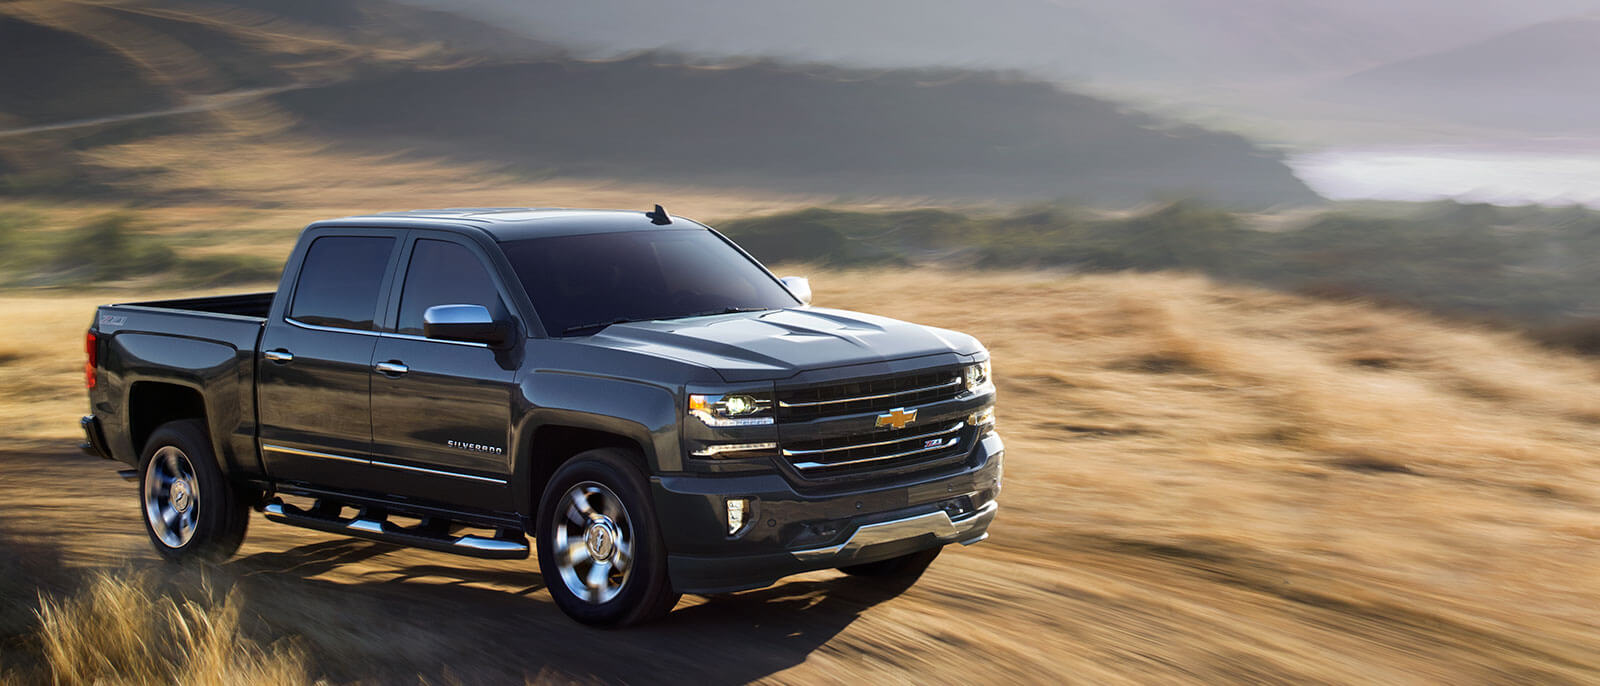 2017 Chevrolet Silverado 1500 in the desert